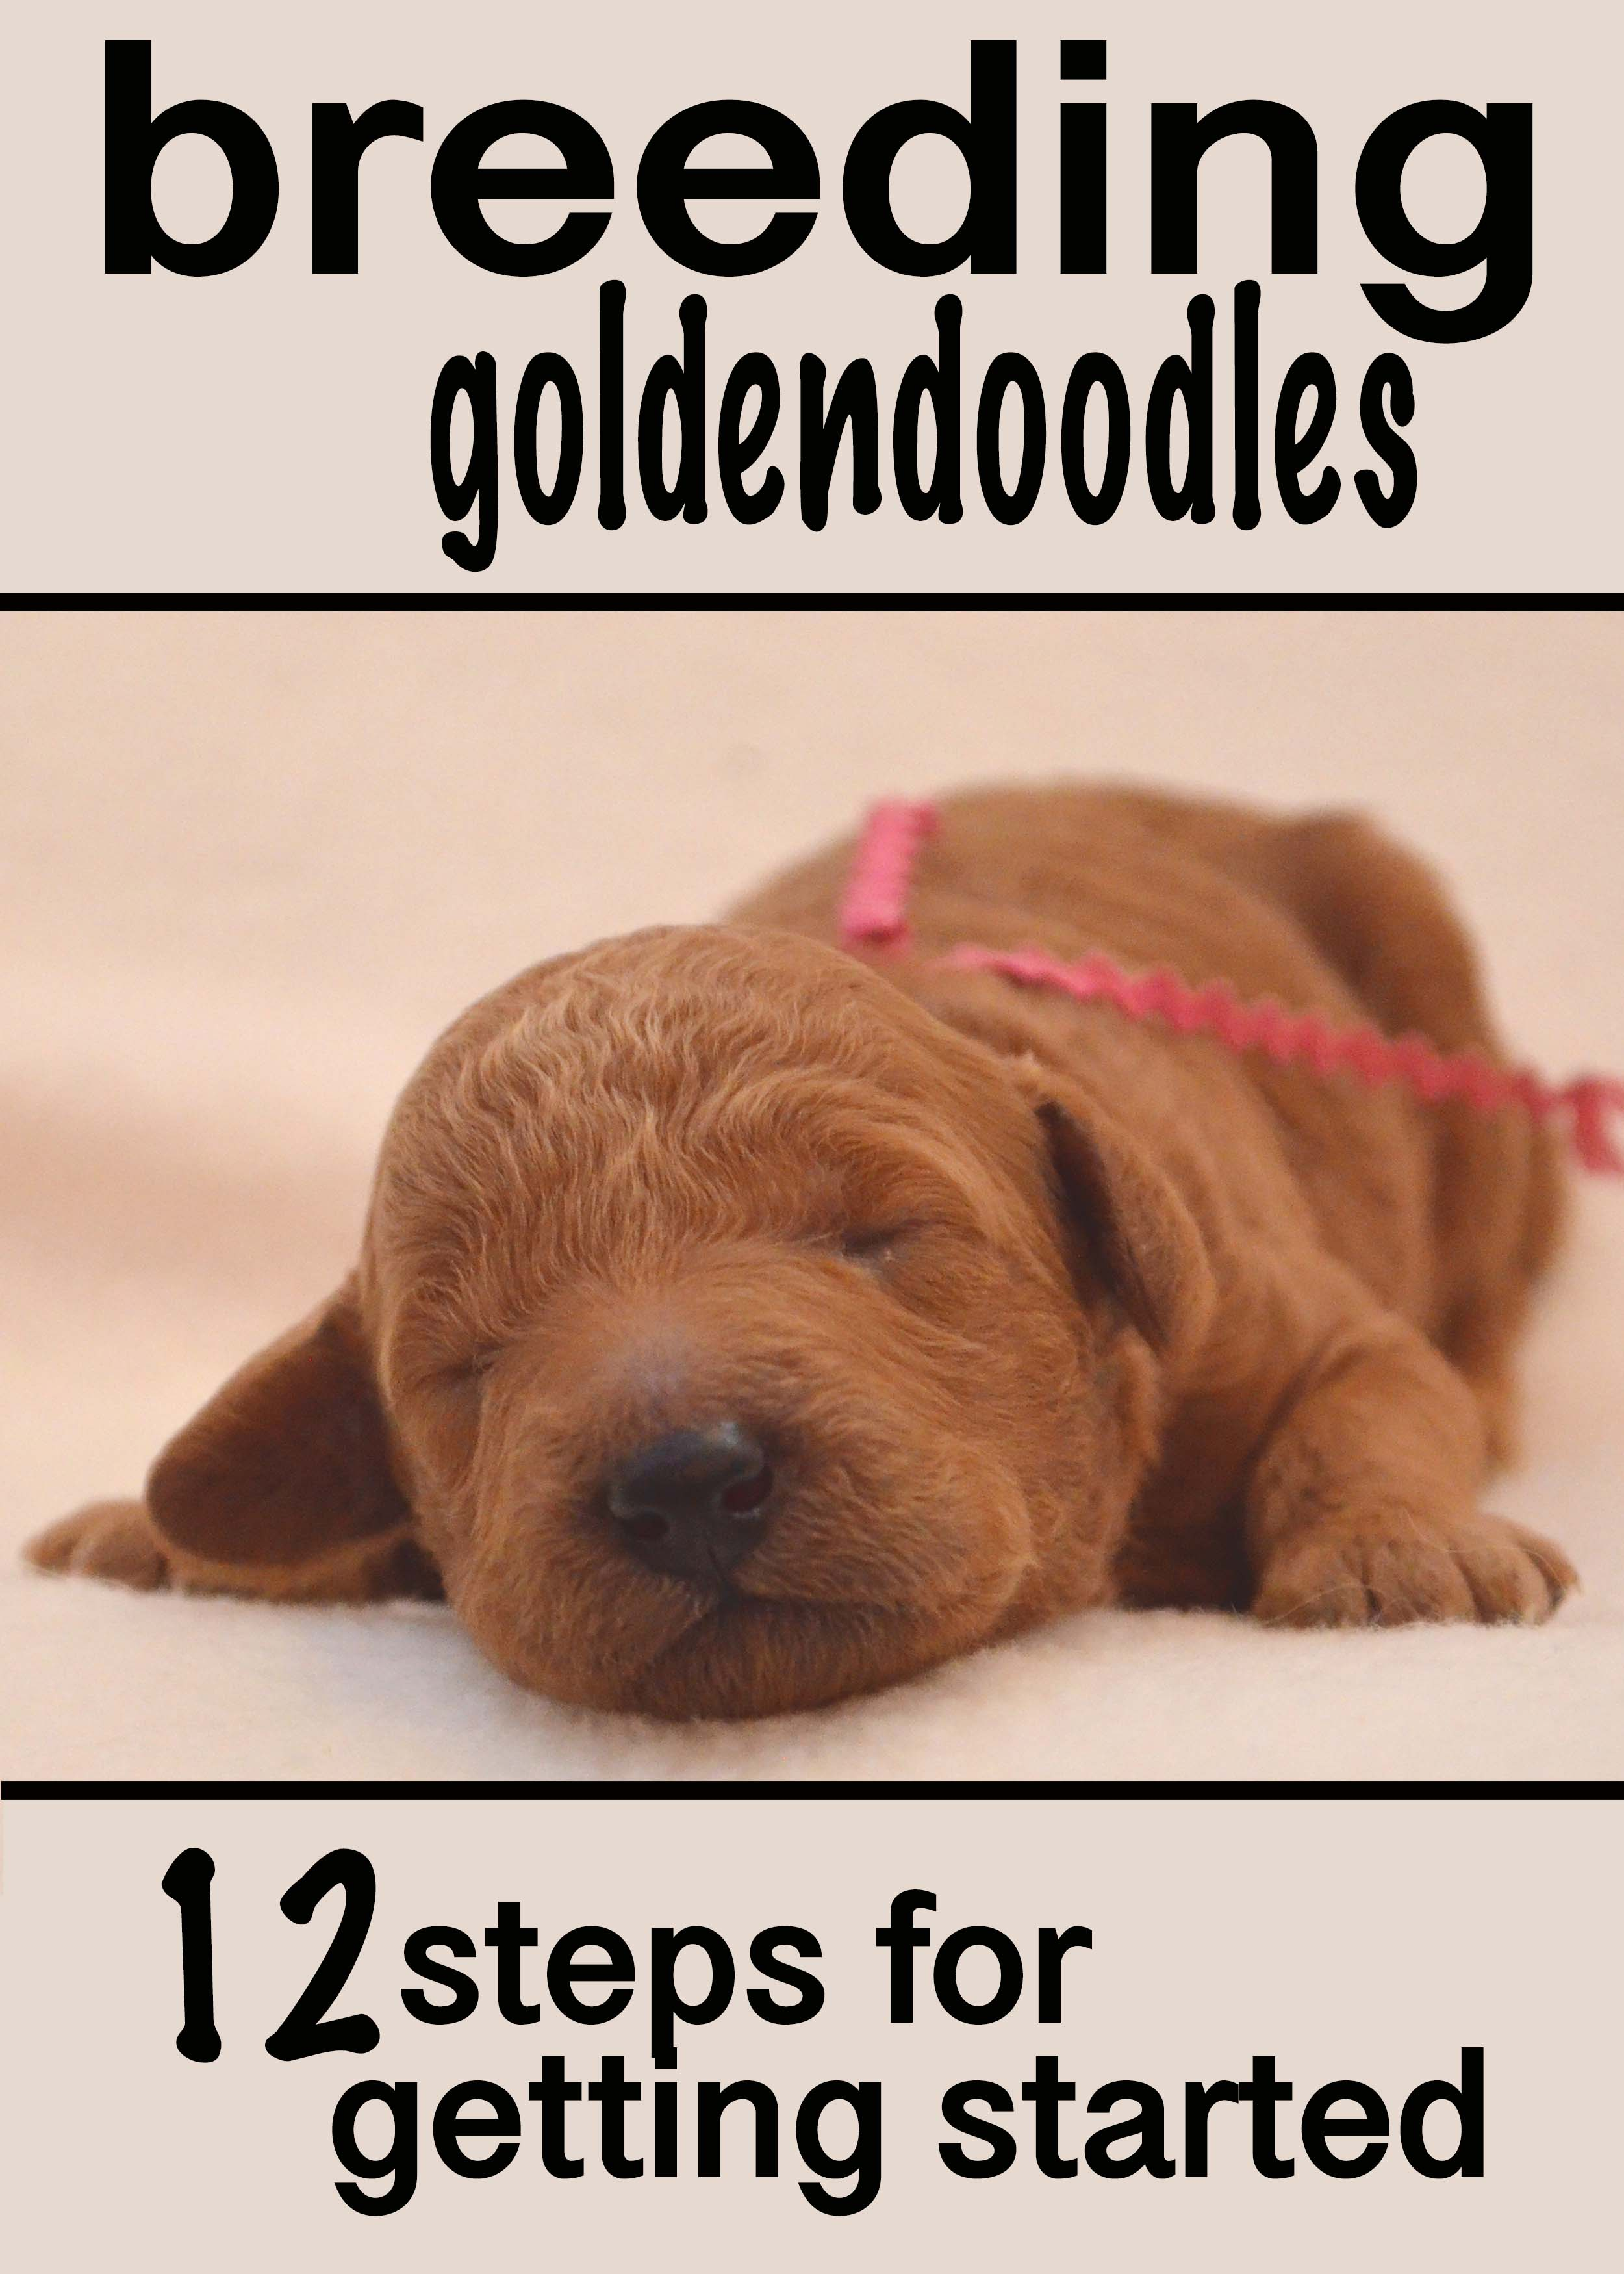 12 Steps To Getting Started Breeding Goldendoodles